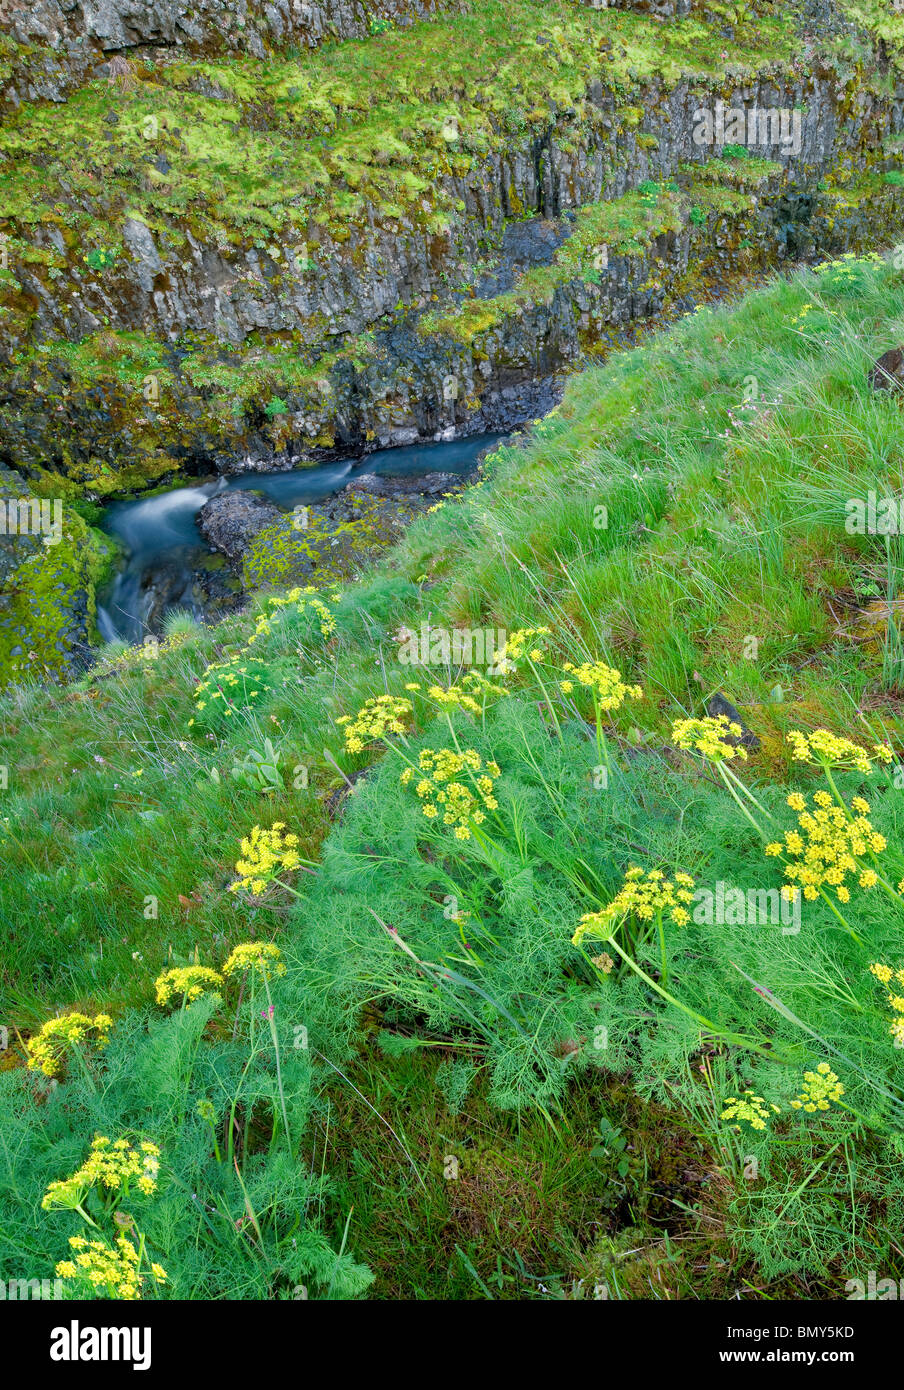 Desierto picante Perejil (Lomatium grayi) y Catherine Creek. Columbia River Gorge National Scenic Area, Washington Imagen De Stock